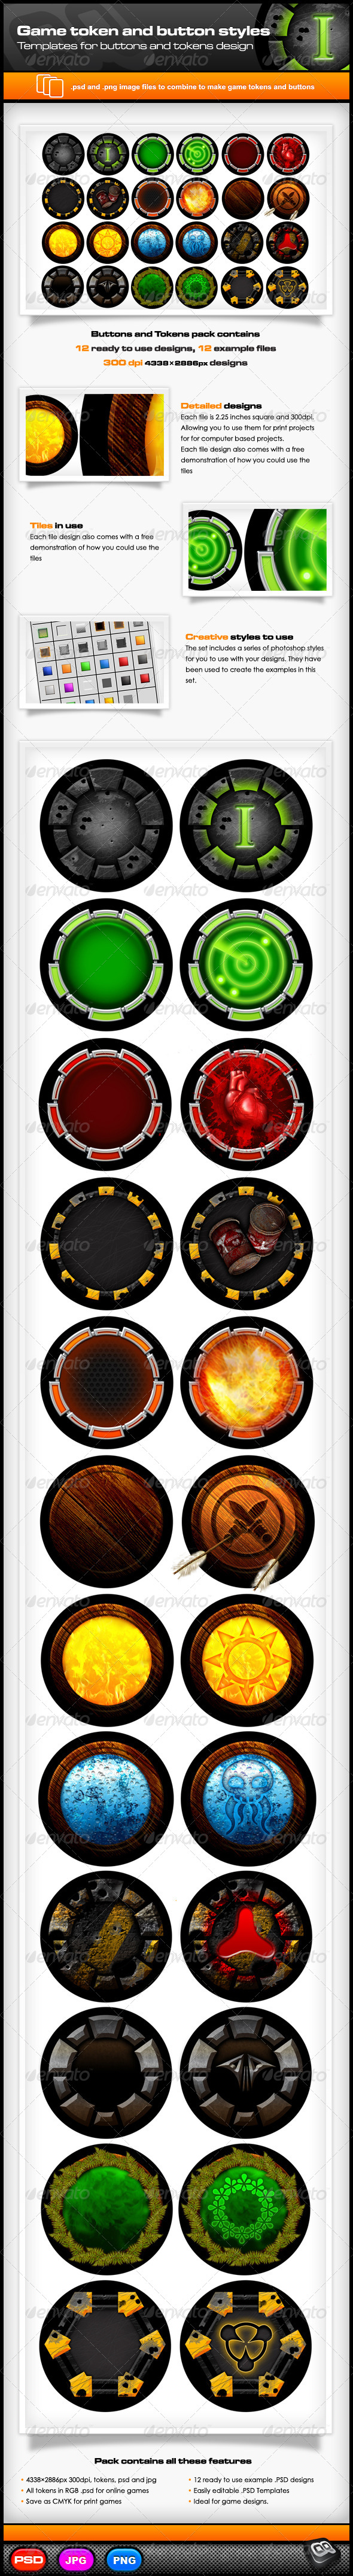 GraphicRiver Game Token and Button Templates 7342183